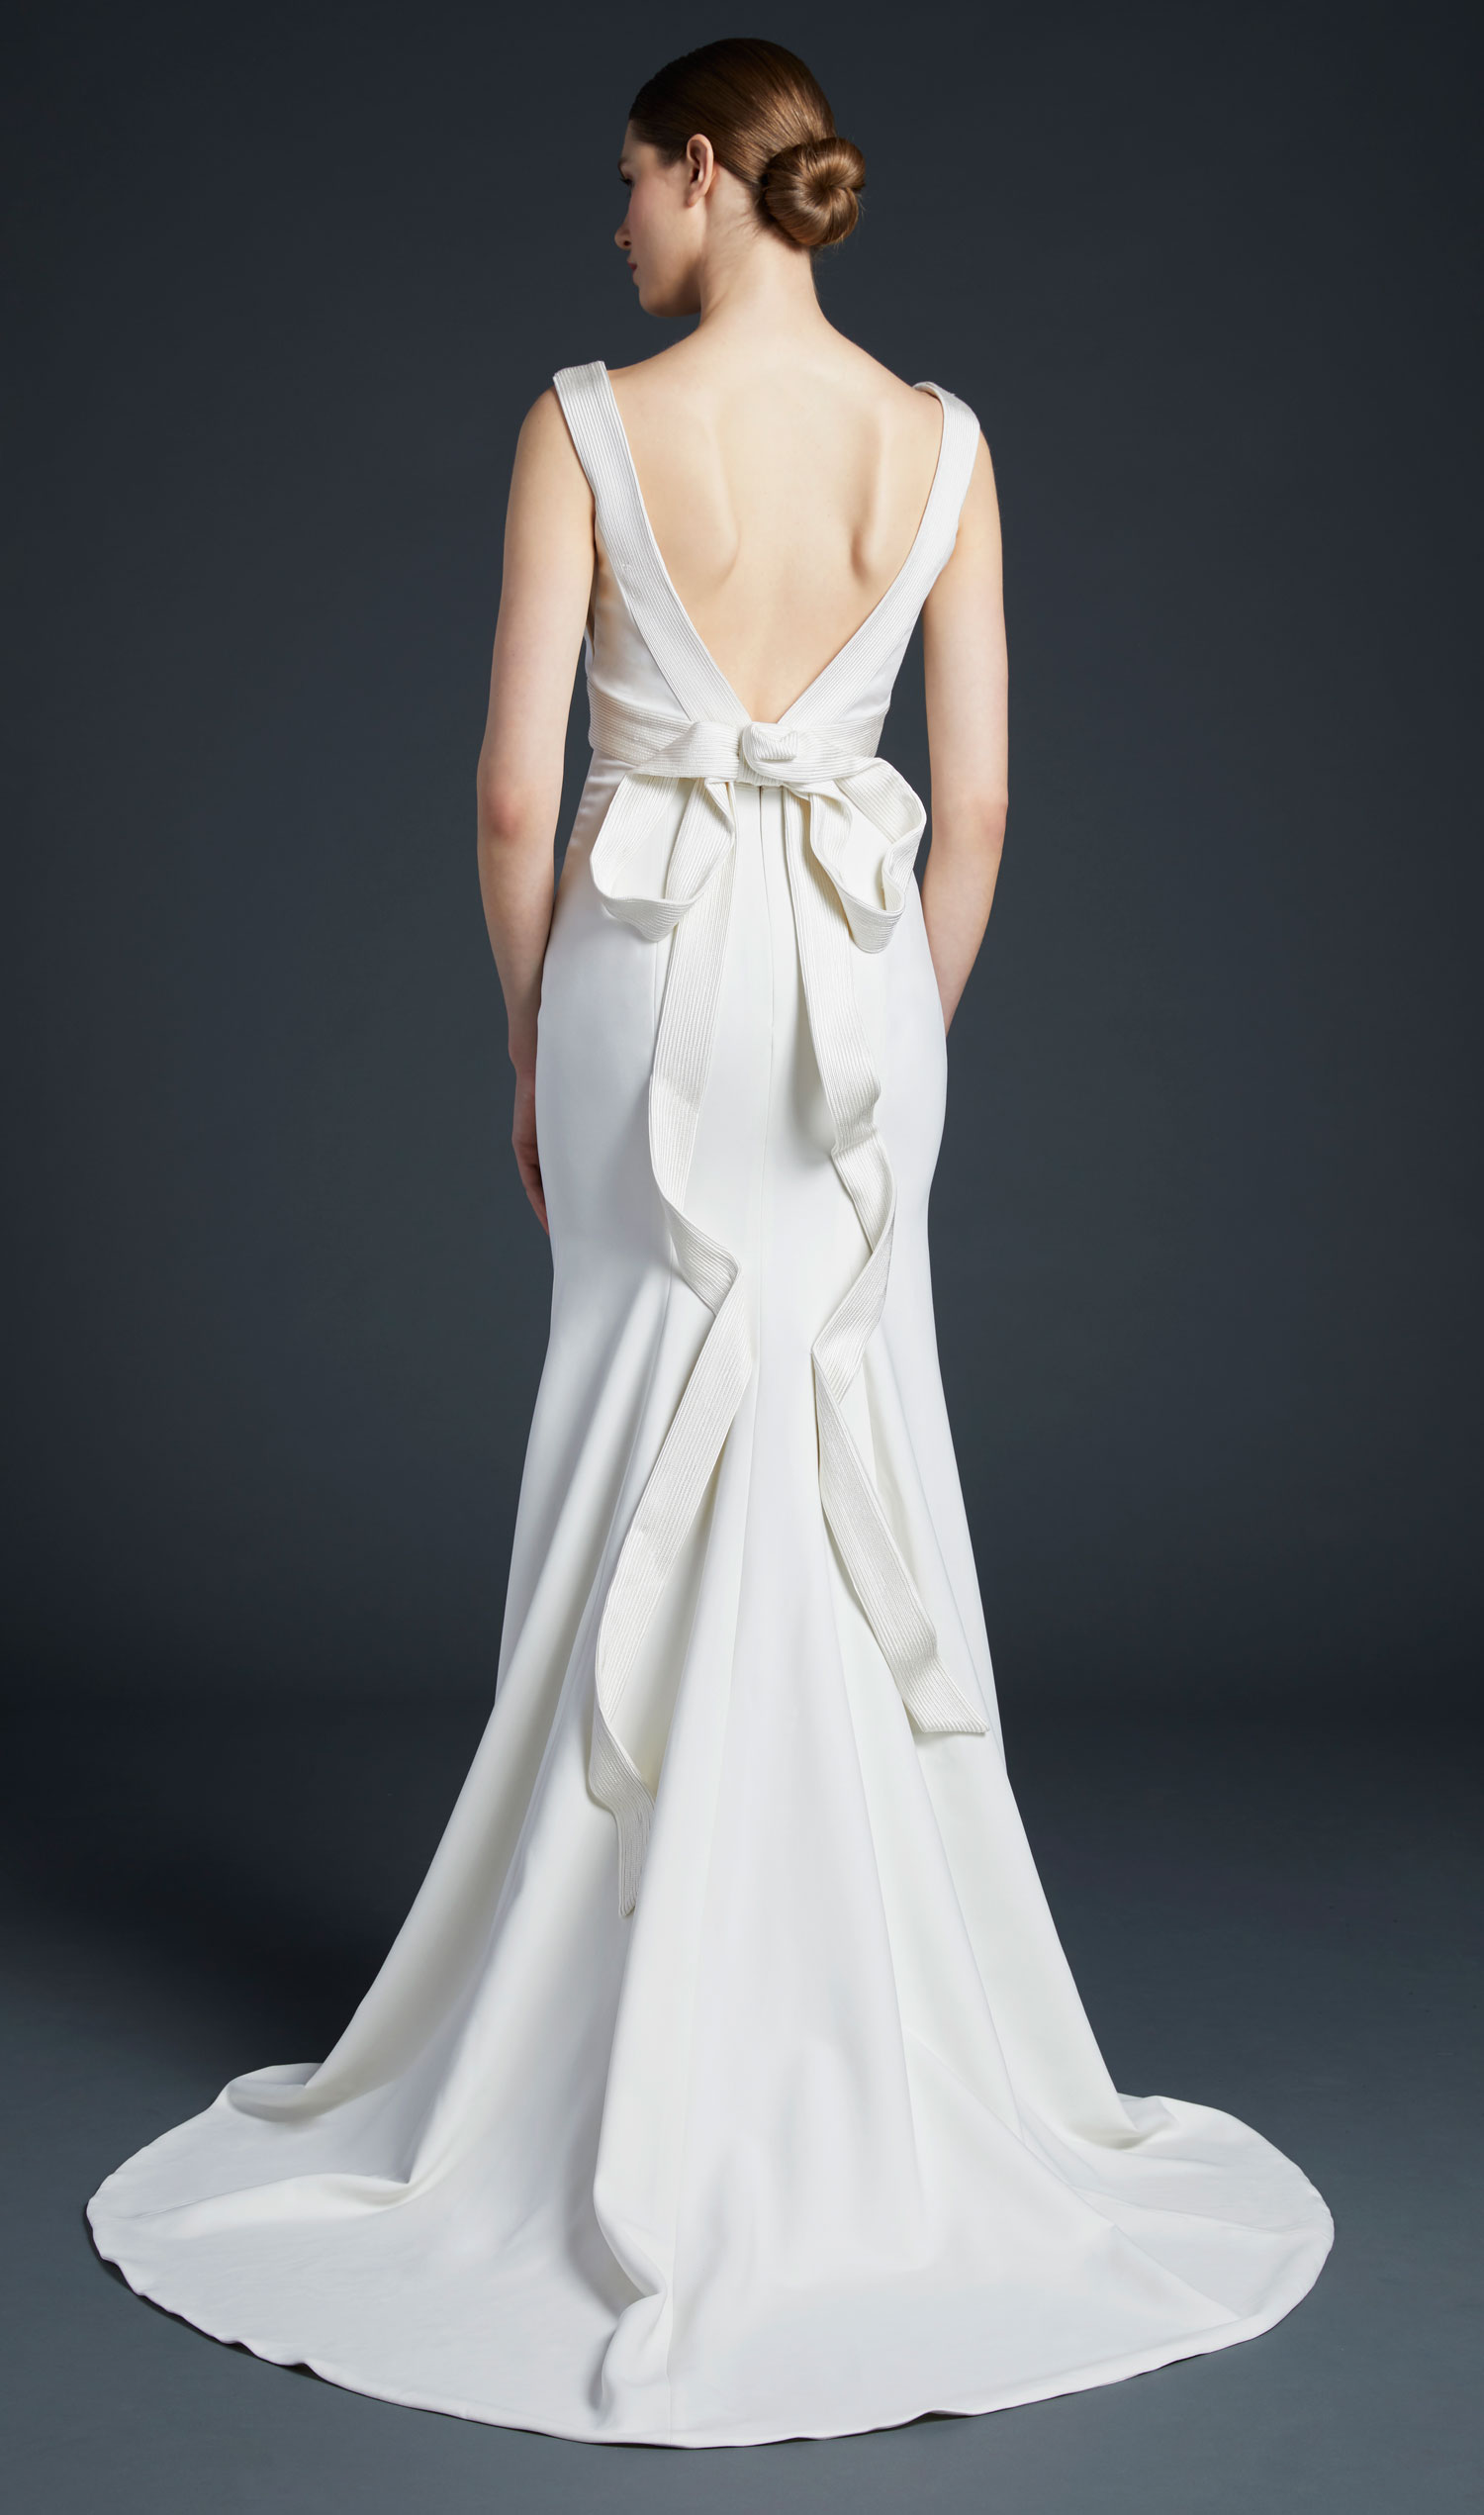 Anne Barge wedding dress Baird bridal gown with low back and large bow in back